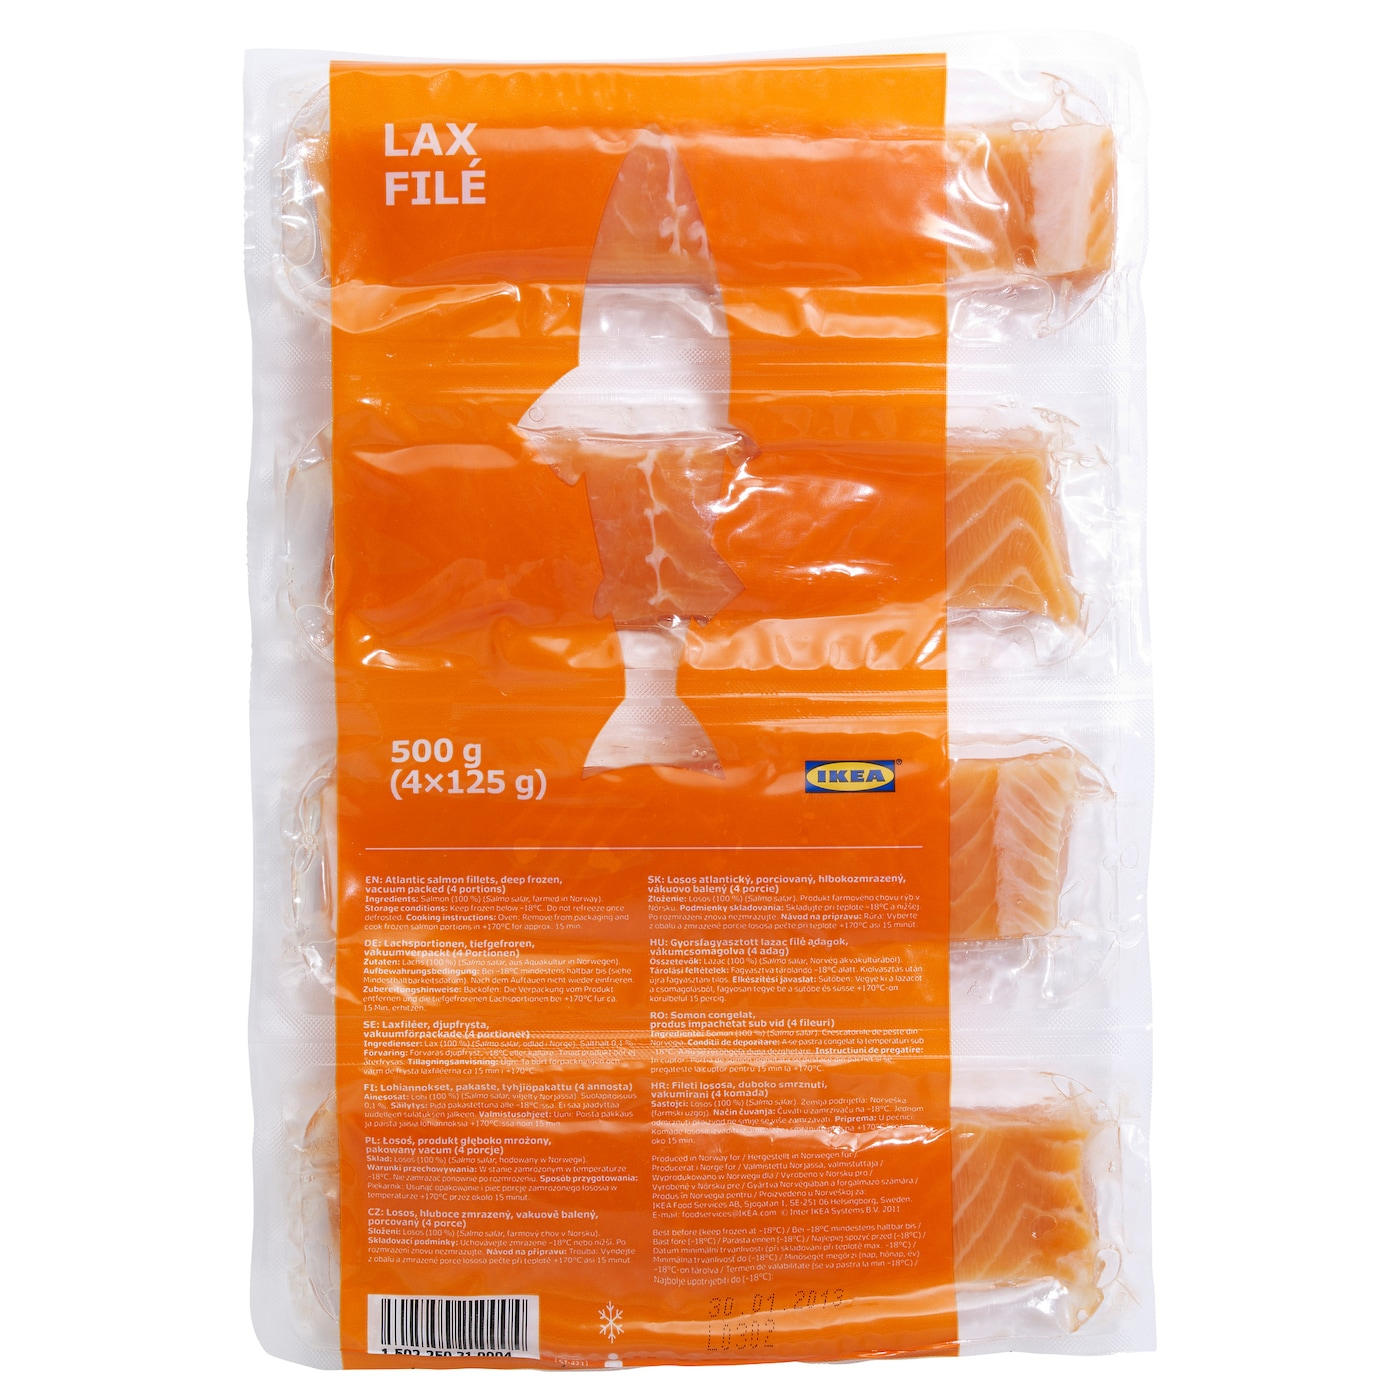 IKEA LAX FILÉ salmon fillet, frozen Salmon is a good source of protein and Omega-3 fatty acids.